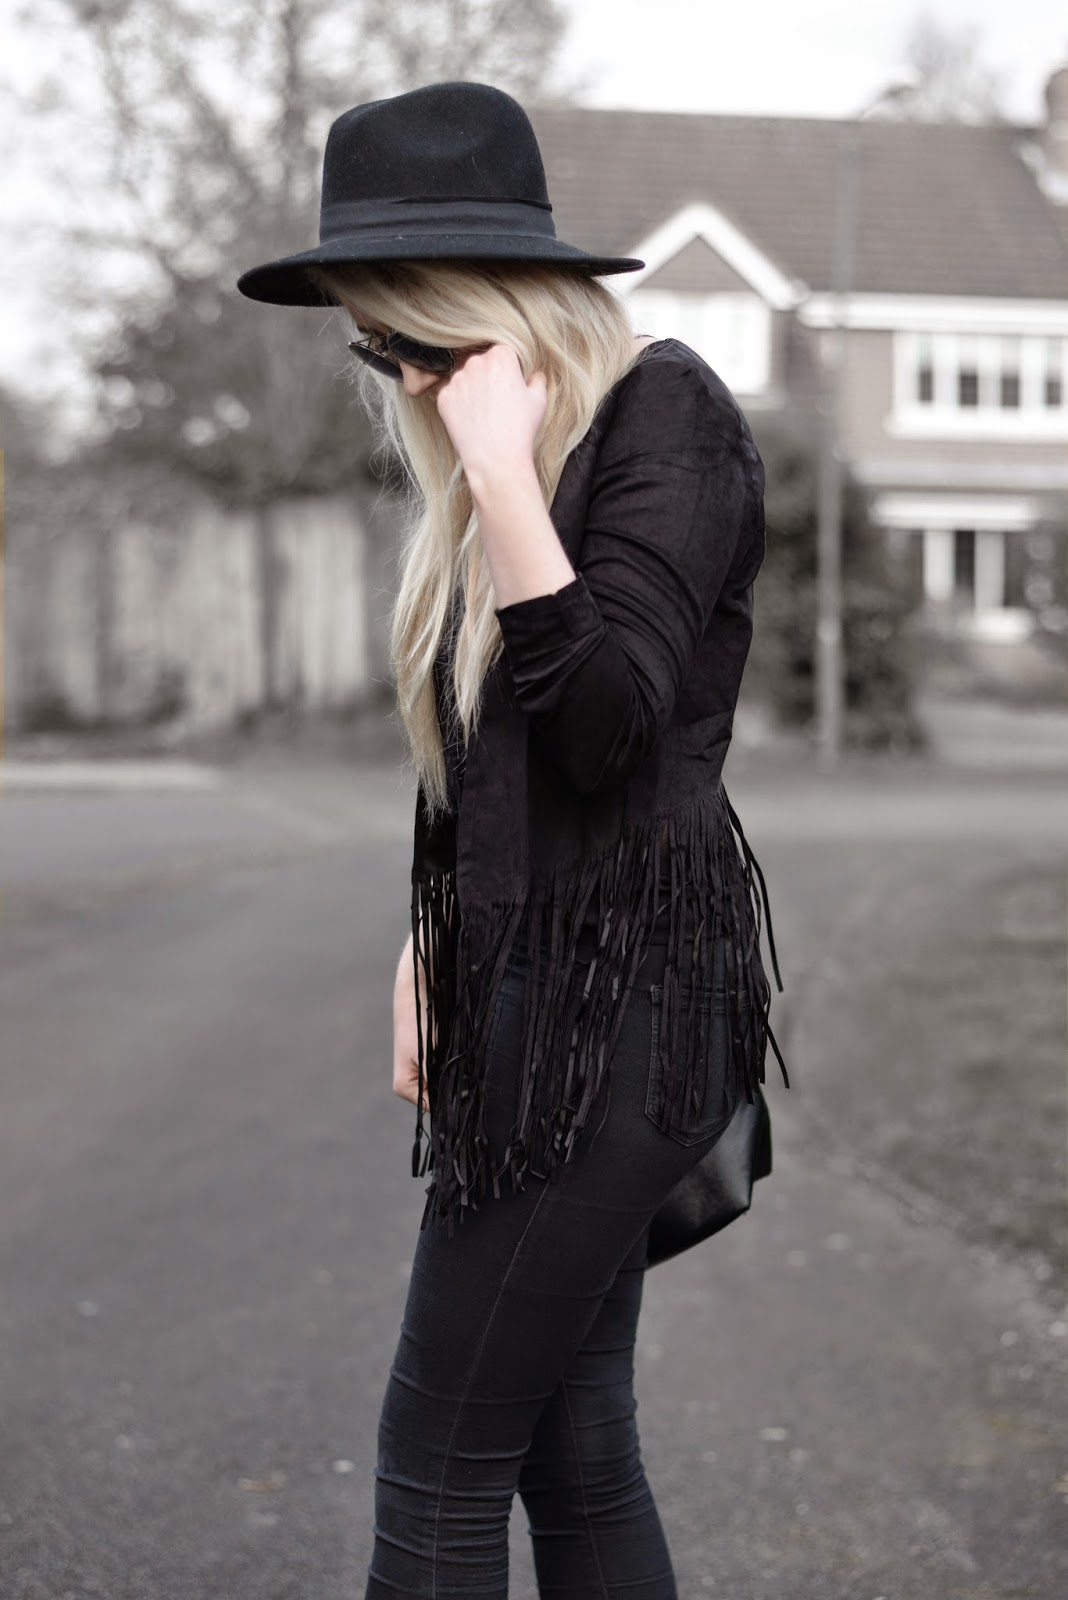 Sammi Jackson - 2 Ways To Wear A Fringed Jacket - Look 2